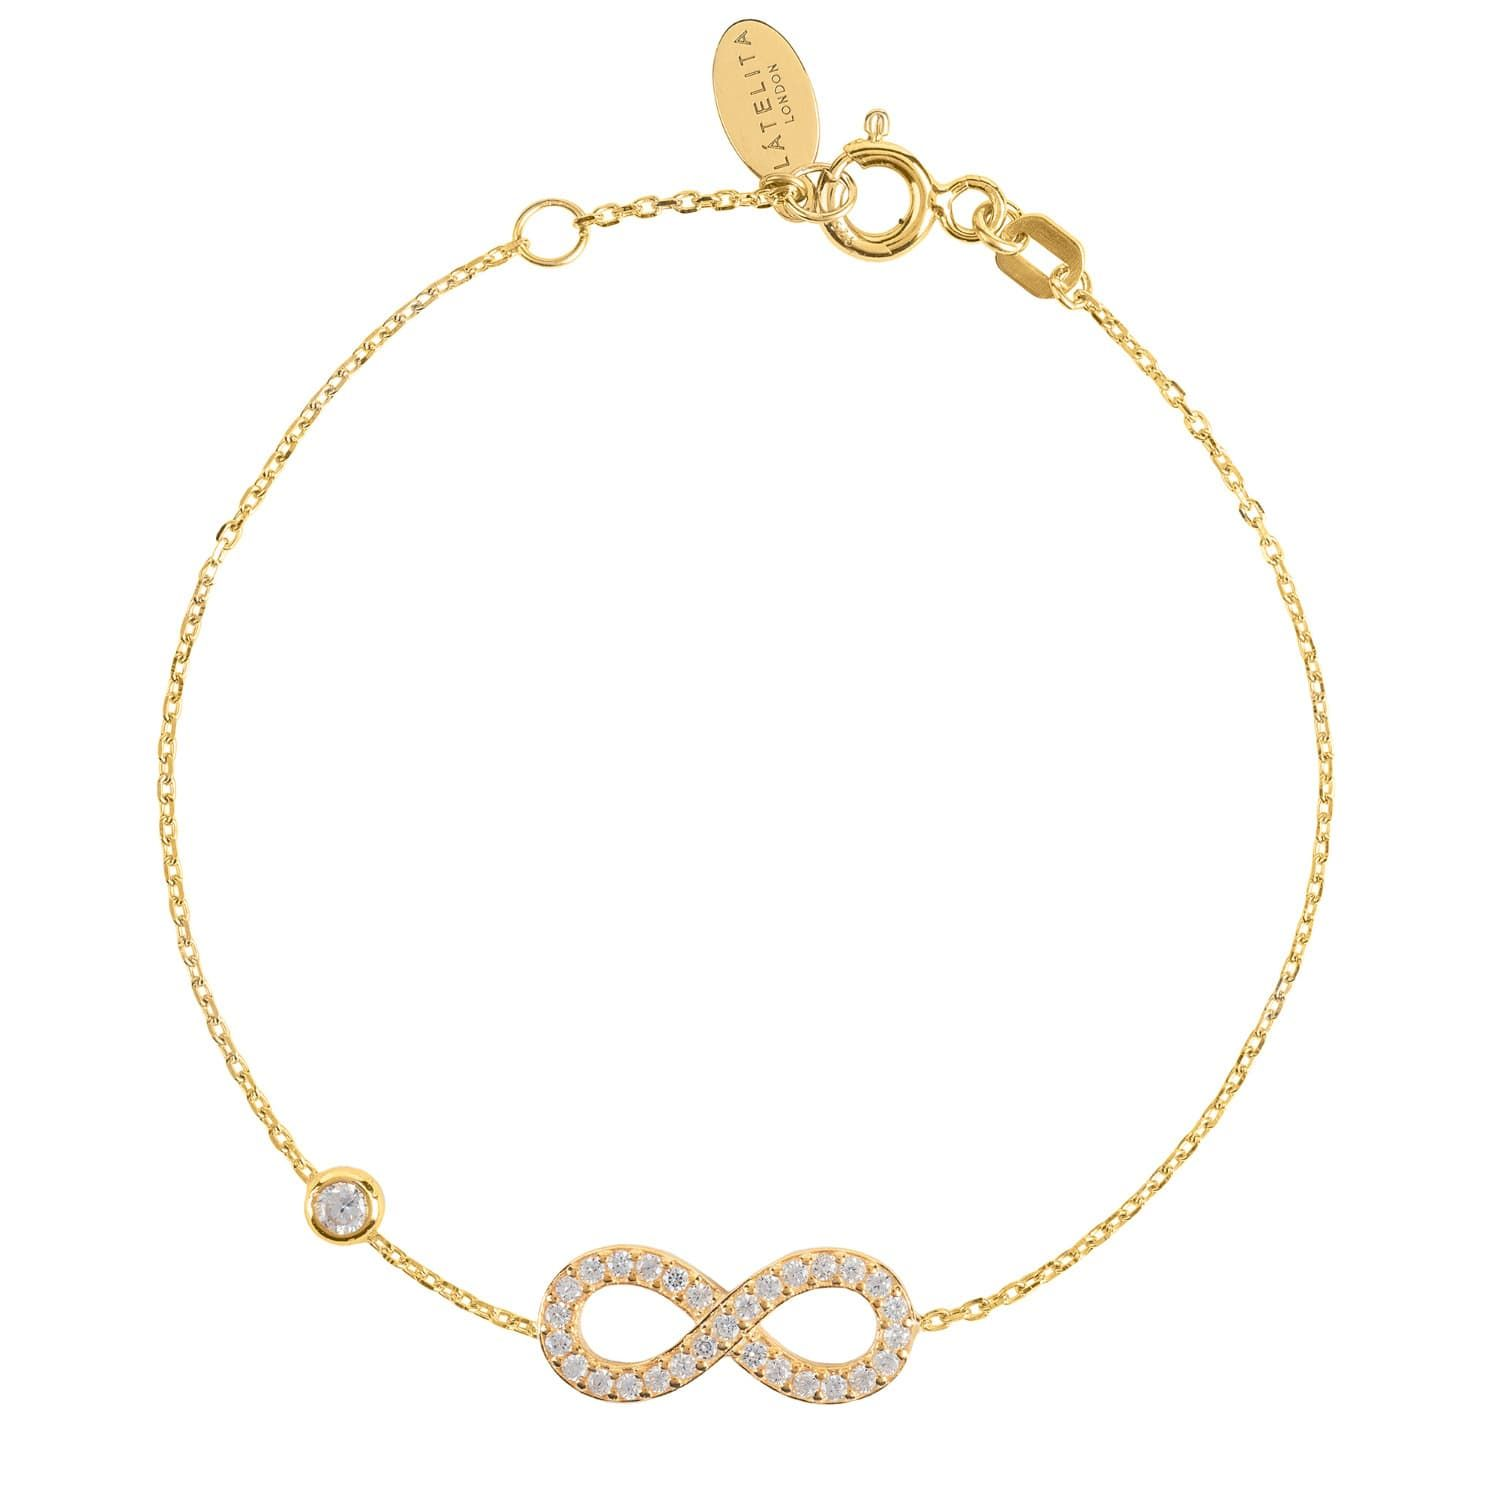 This Simple Yet Chic Eternity Bracelet Is Perfect For Everyday Styling Either Worn Singularly